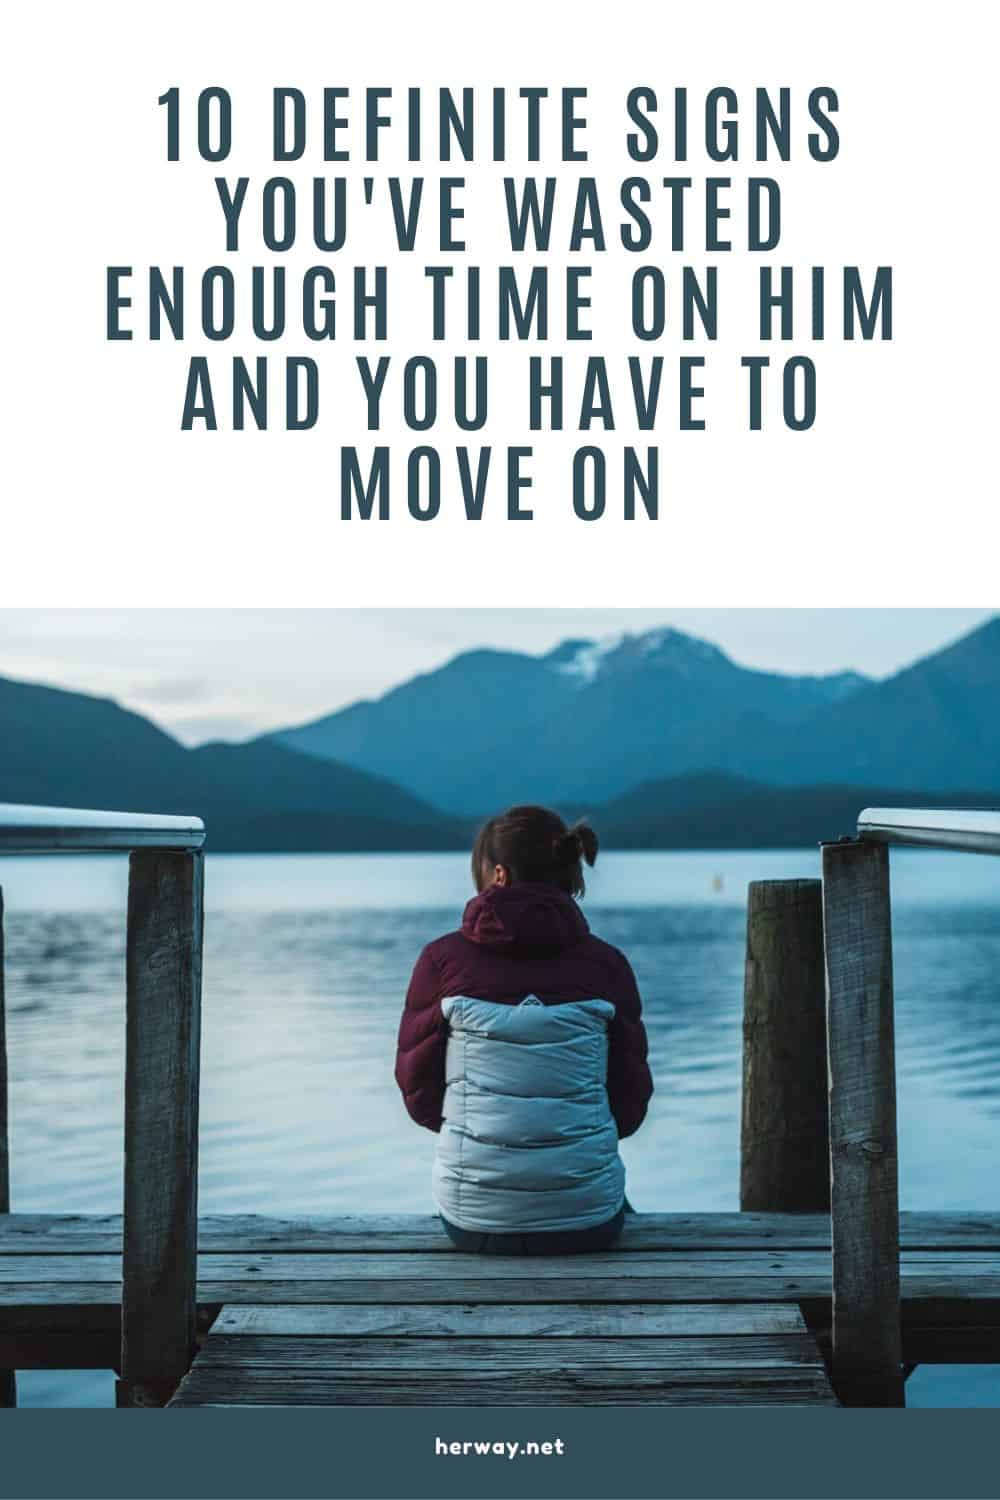 10 Definite Signs You've Wasted Enough Time On Him And You Have To Move On